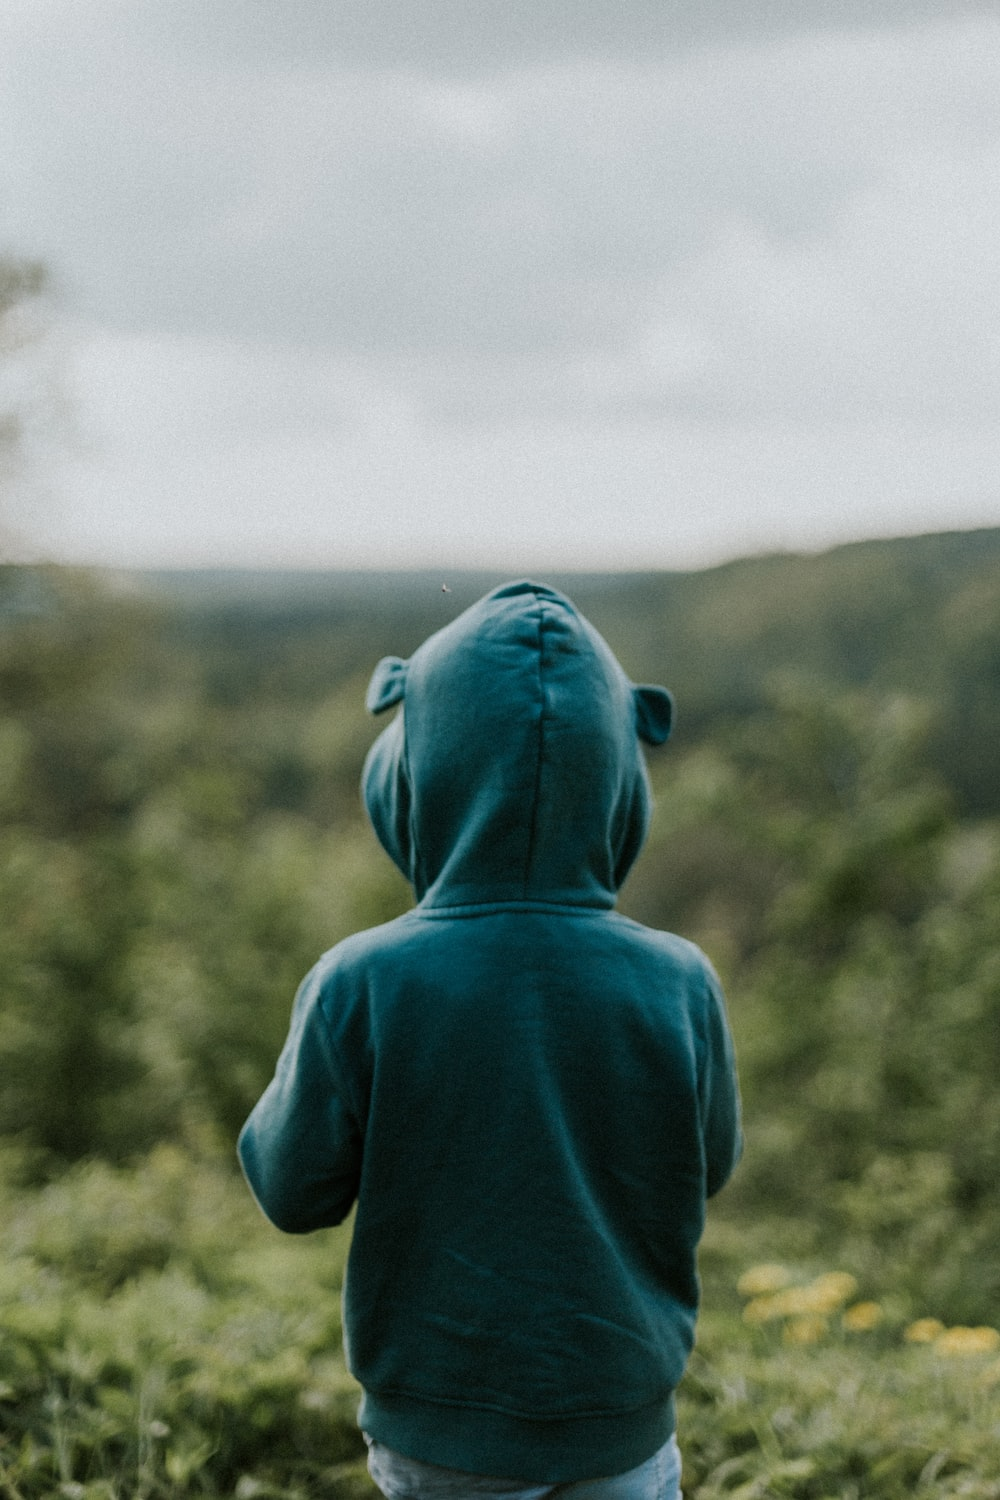 kid wearing green hoodie close-up photography